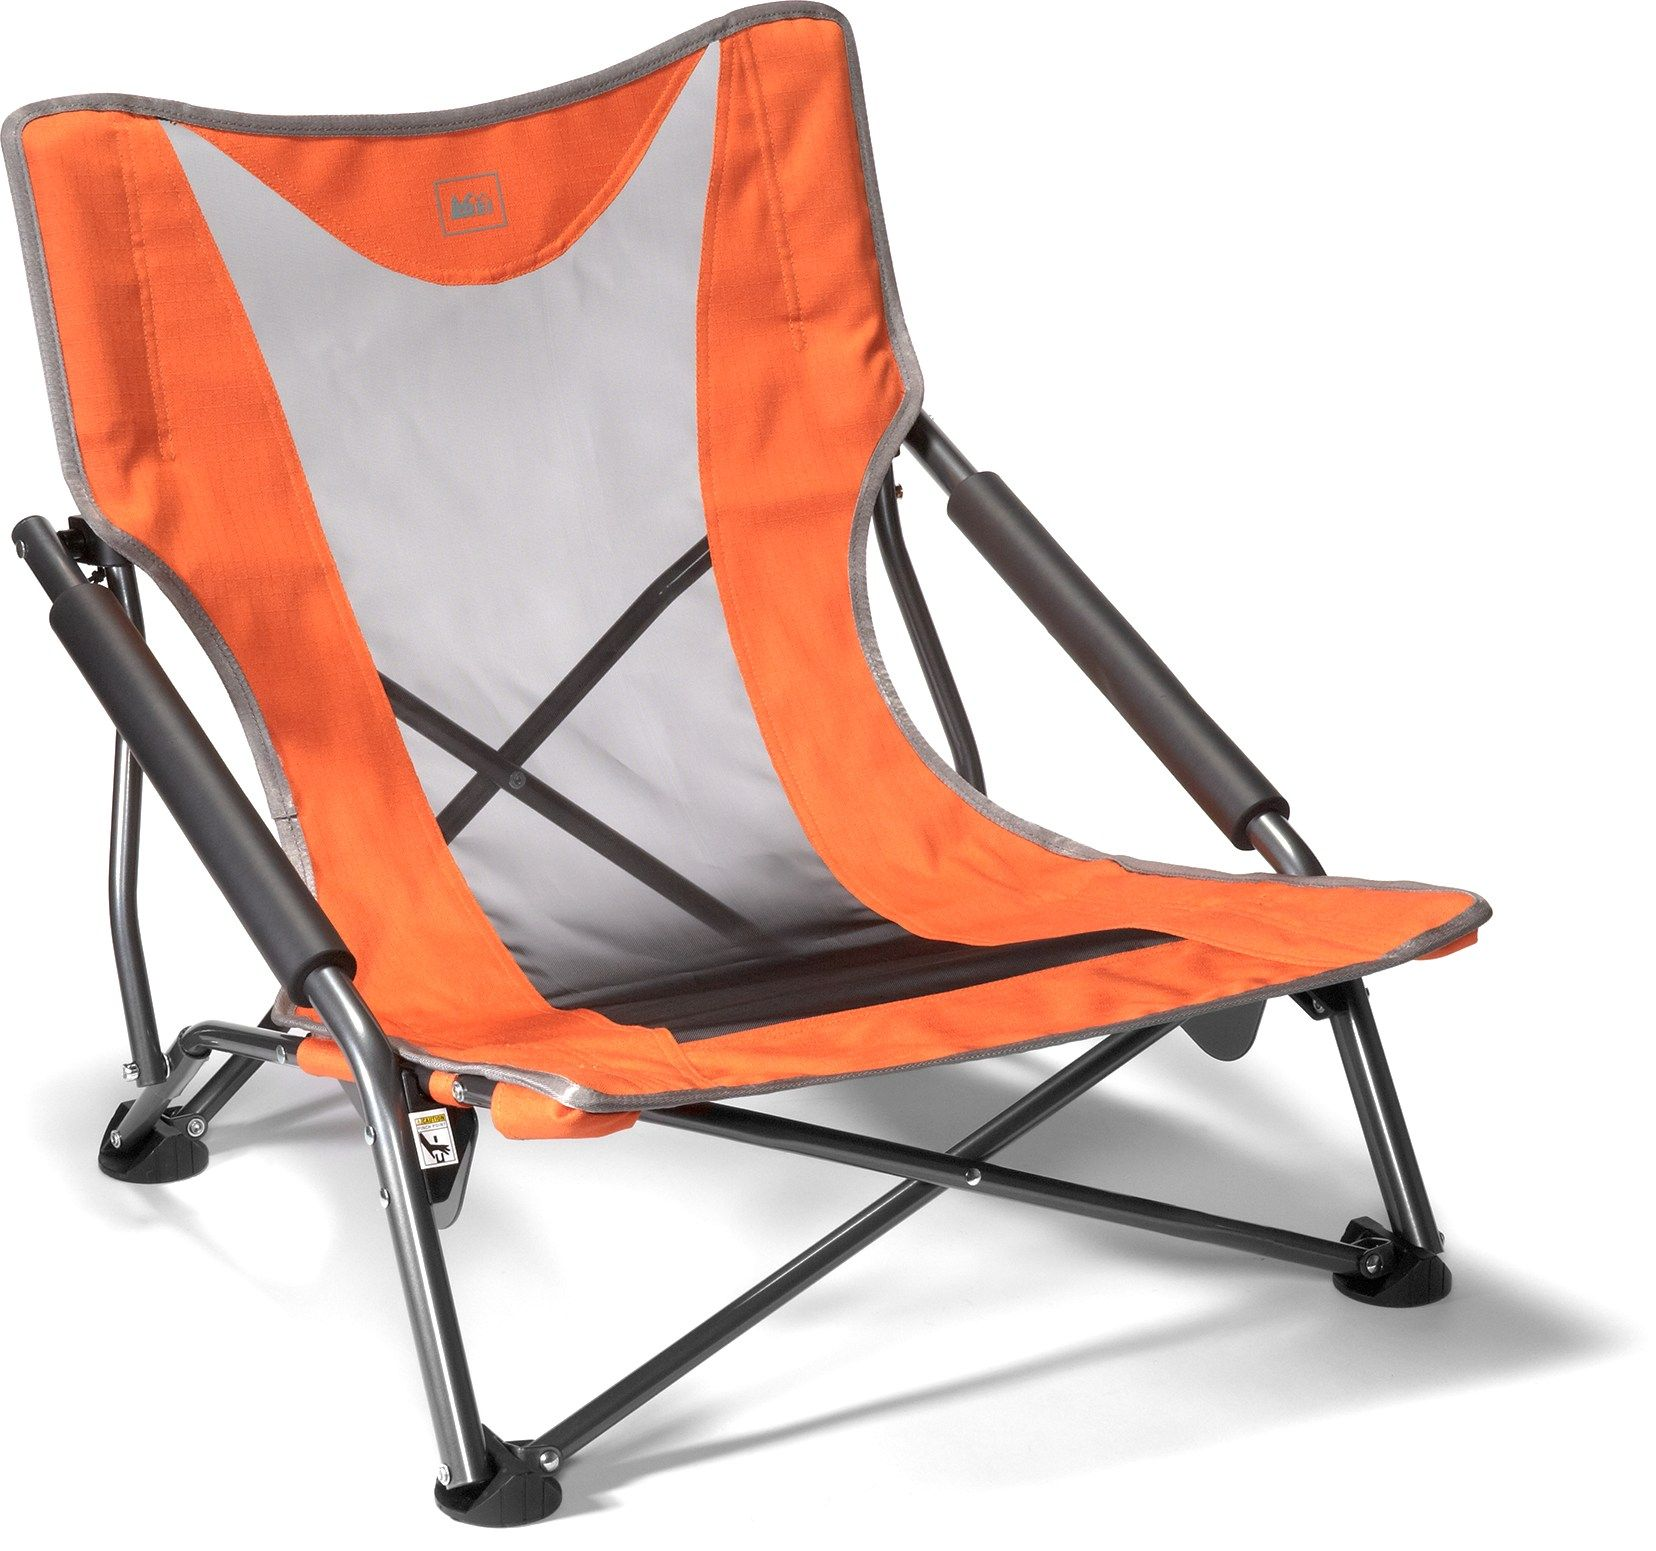 Camp Chairs Rei Folding Desk Chair With Wheels Stowaway Low Com Outdoor And Indoor